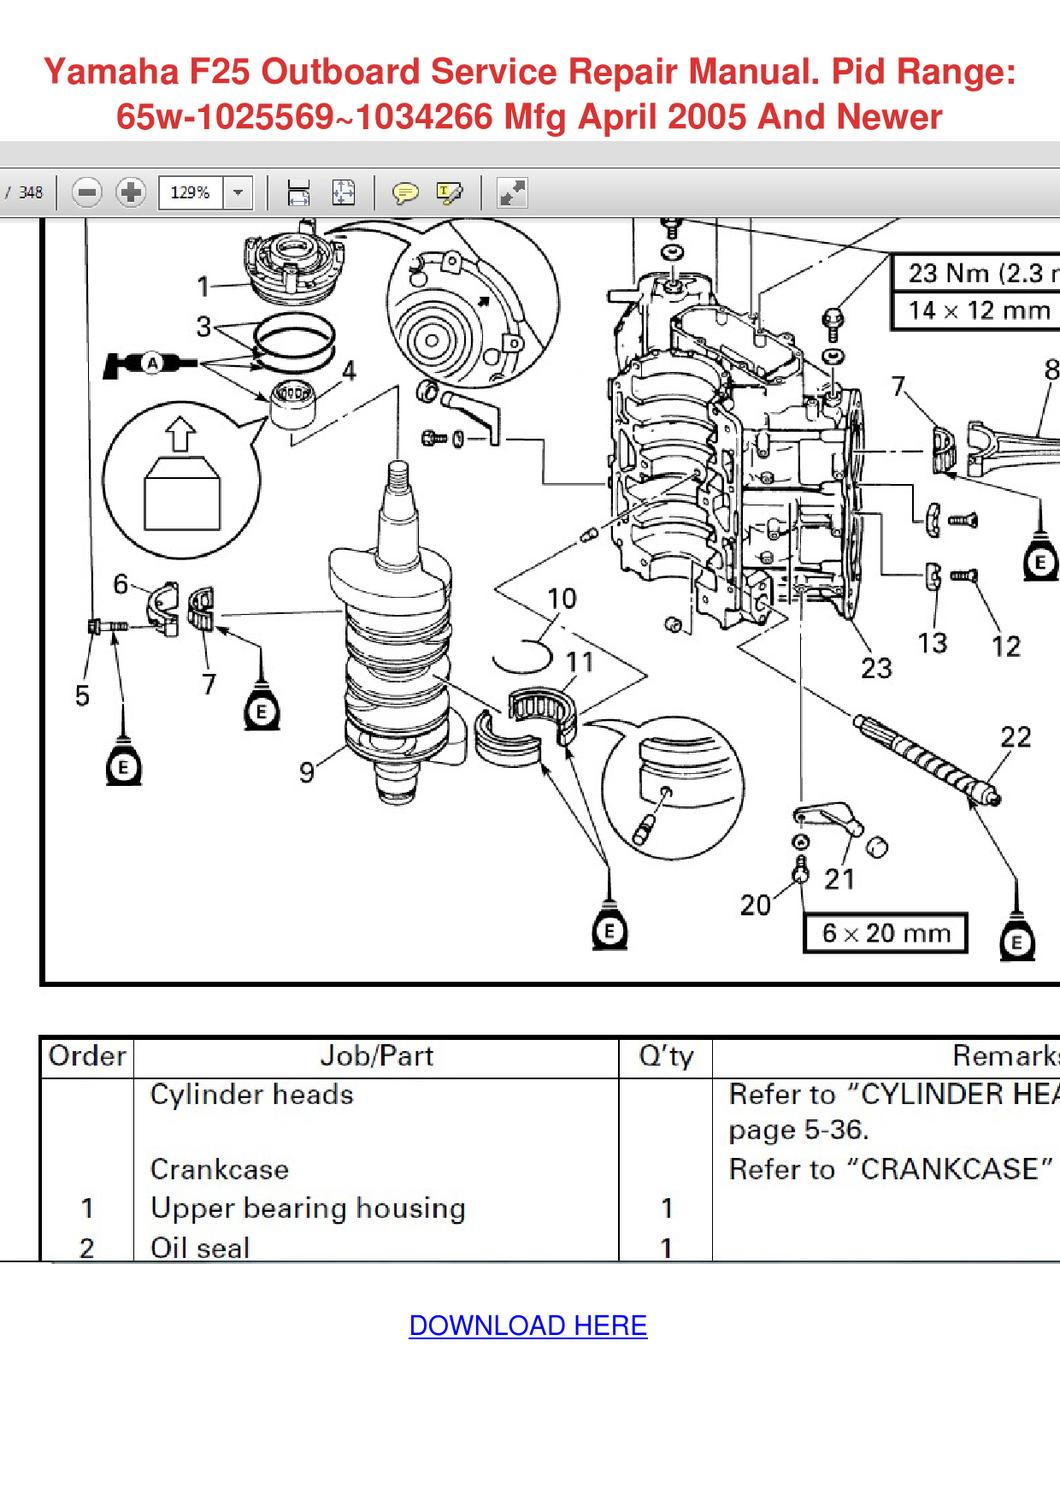 1988 Evinrude Parts Diagram Wiring Schematic Yamaha F25 Outboard Service Repair Manual Pid By Yung